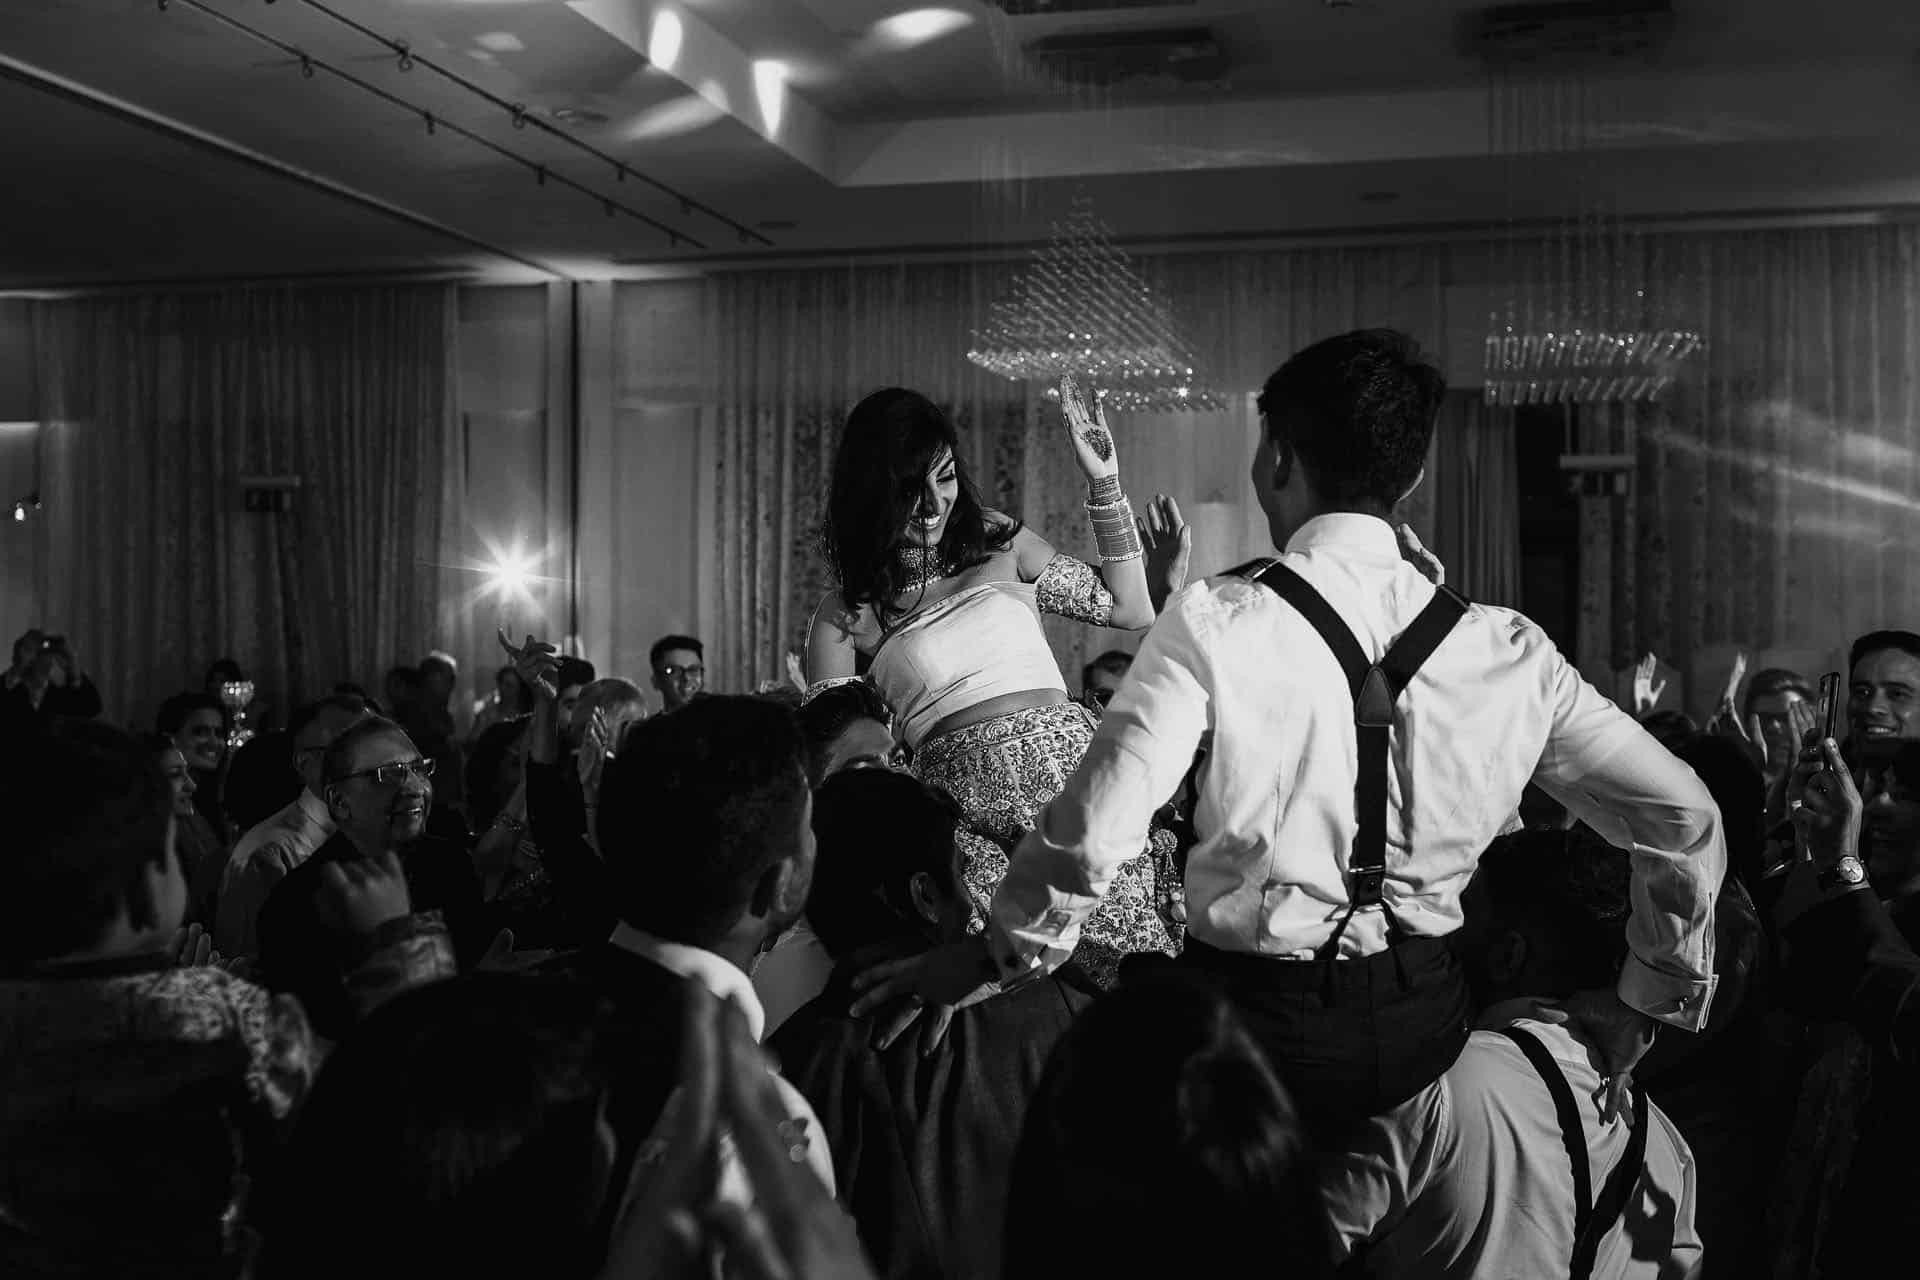 heythrop park hindu wedding photography